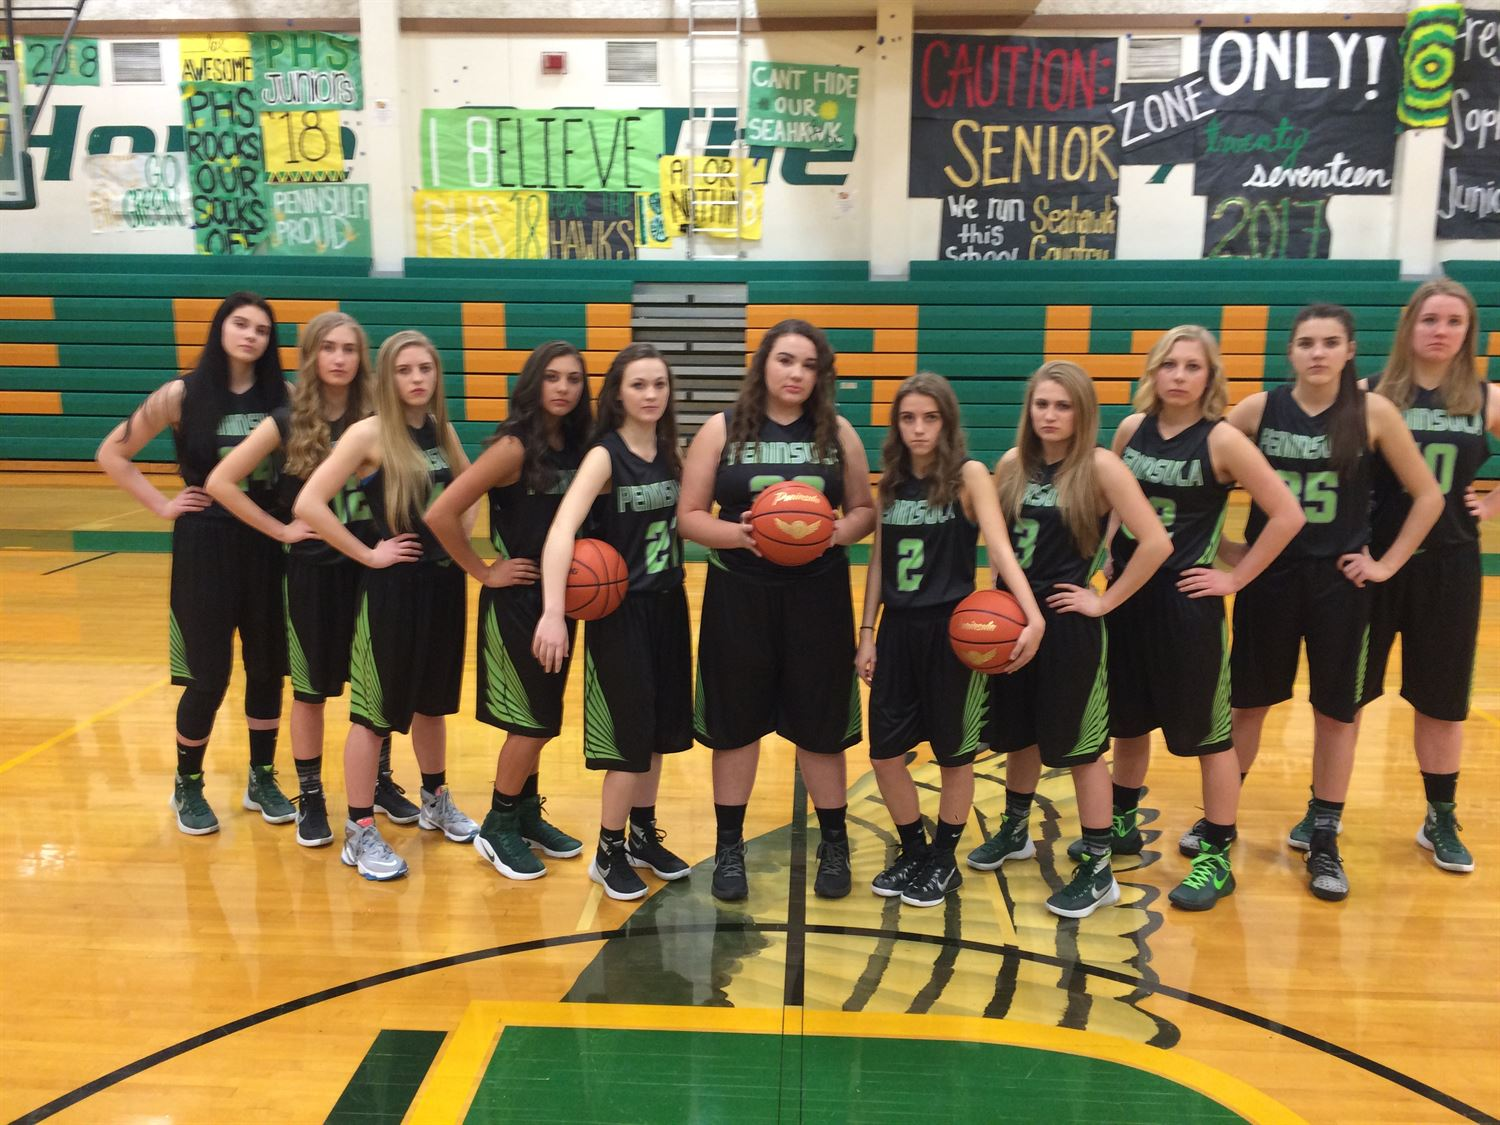 Peninsula High School - Girls' Varsity Basketball